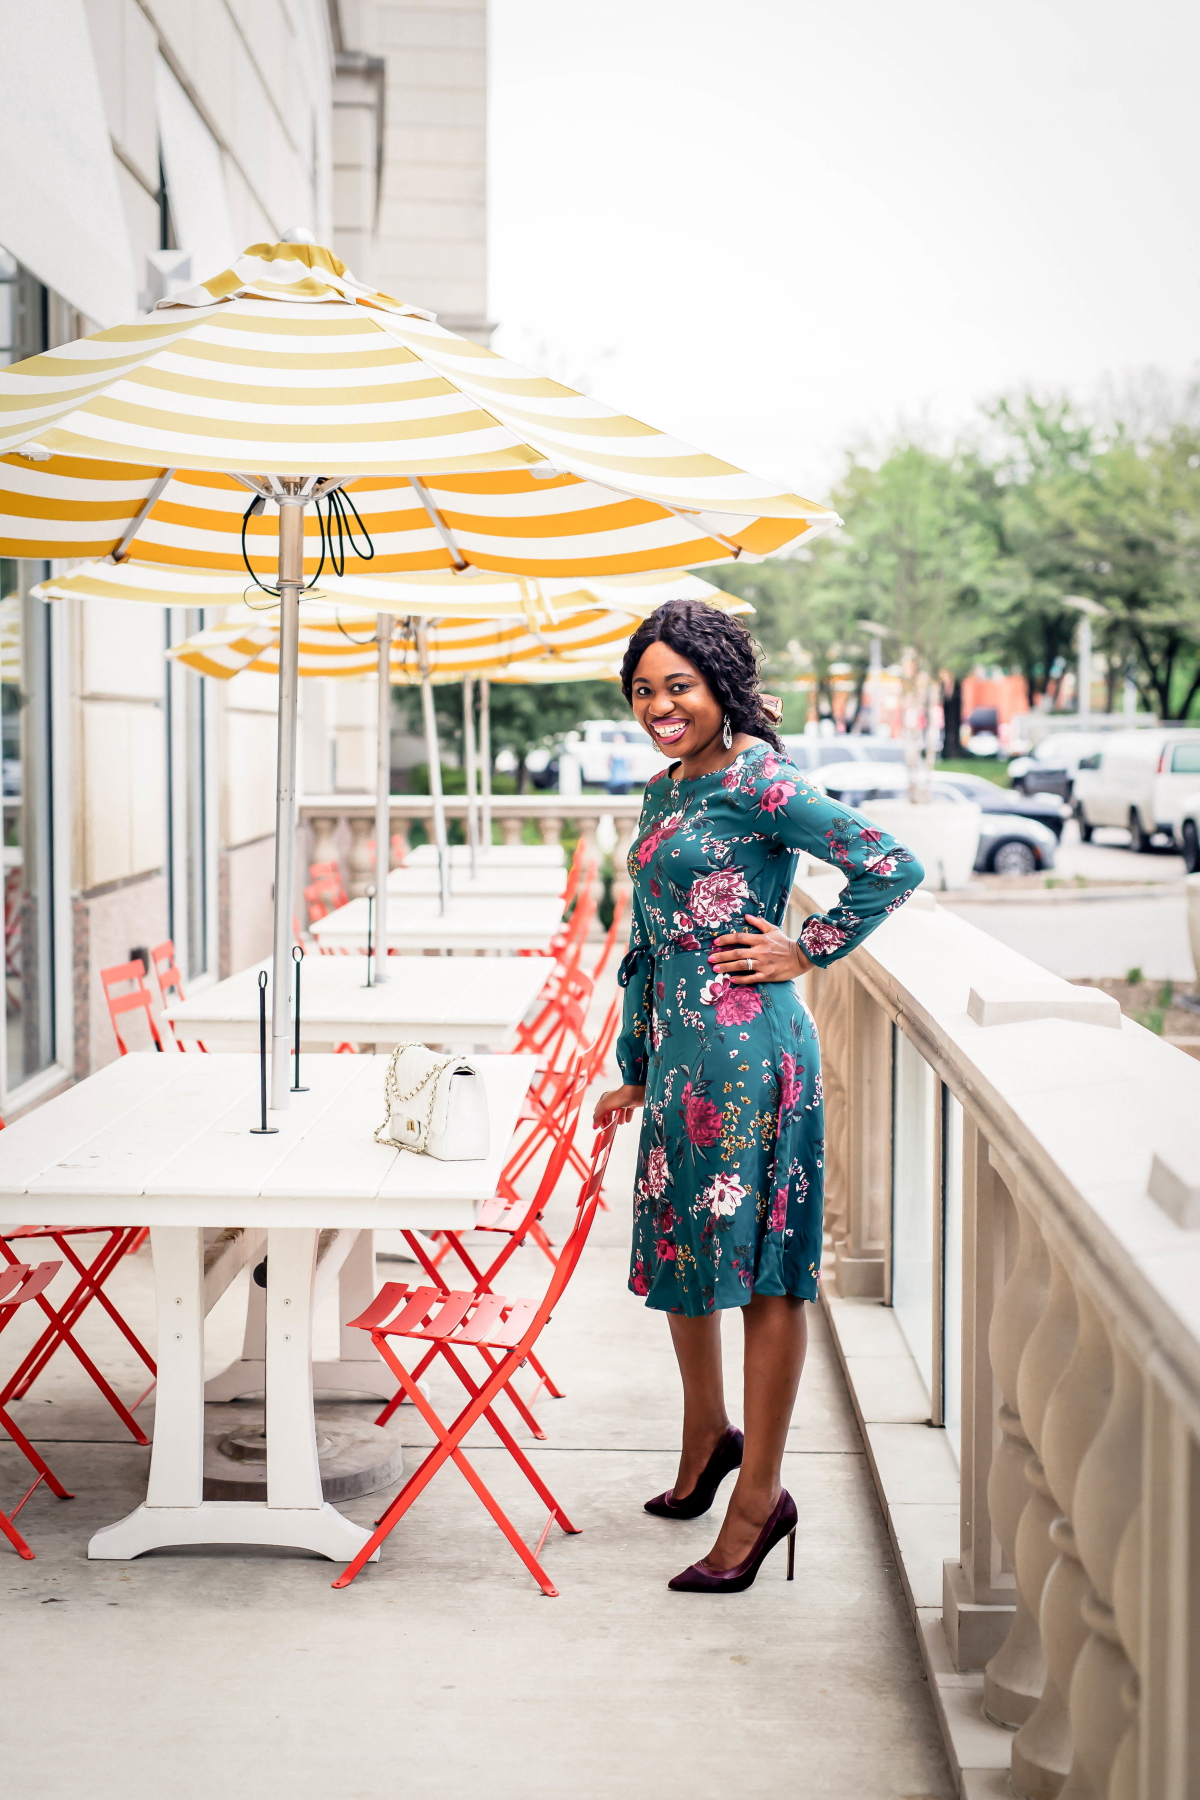 New Jersey fashion blogger shows us best floral dress to wear this season. This under $50 midi dress is the perfect dress for special occasions. It's so versatile that it can easily be dressed up or down for any occasion. #mididress #dressoutfits